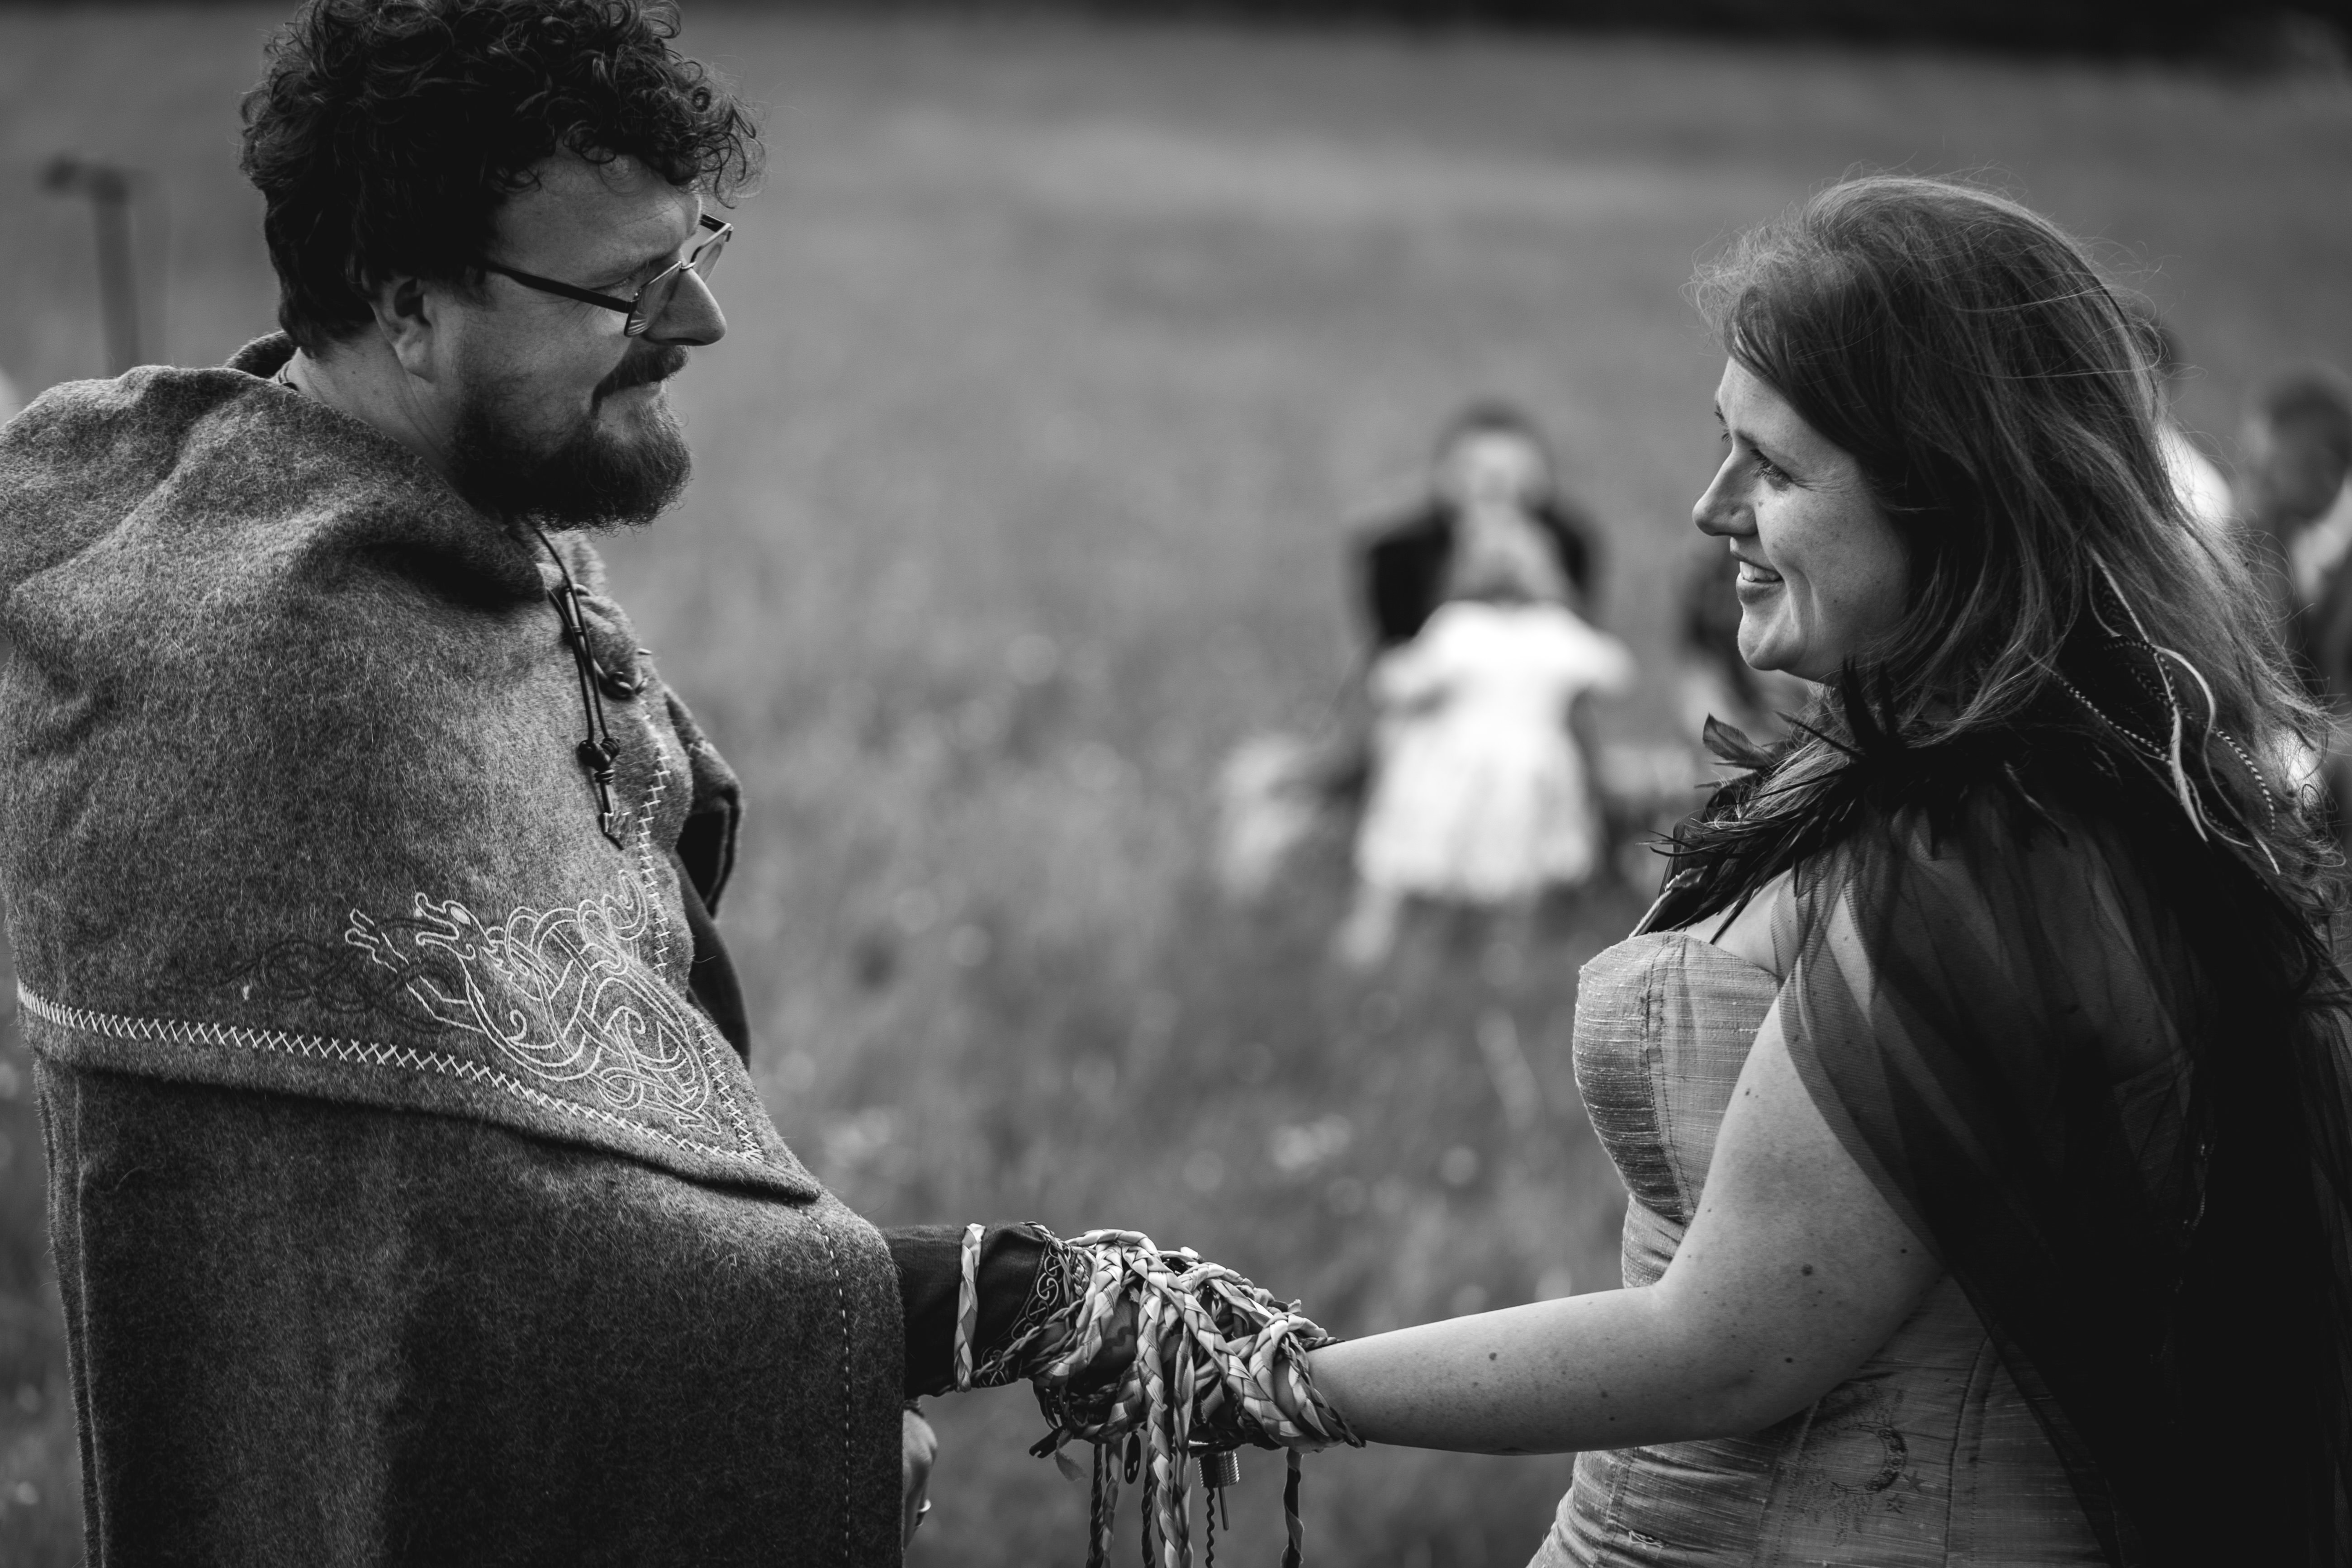 Bride and Groom in Viking clothes stand together and smile at one another. Their hands are bound with Handfasting cords by Keli Tomlin. The image is in black and white.